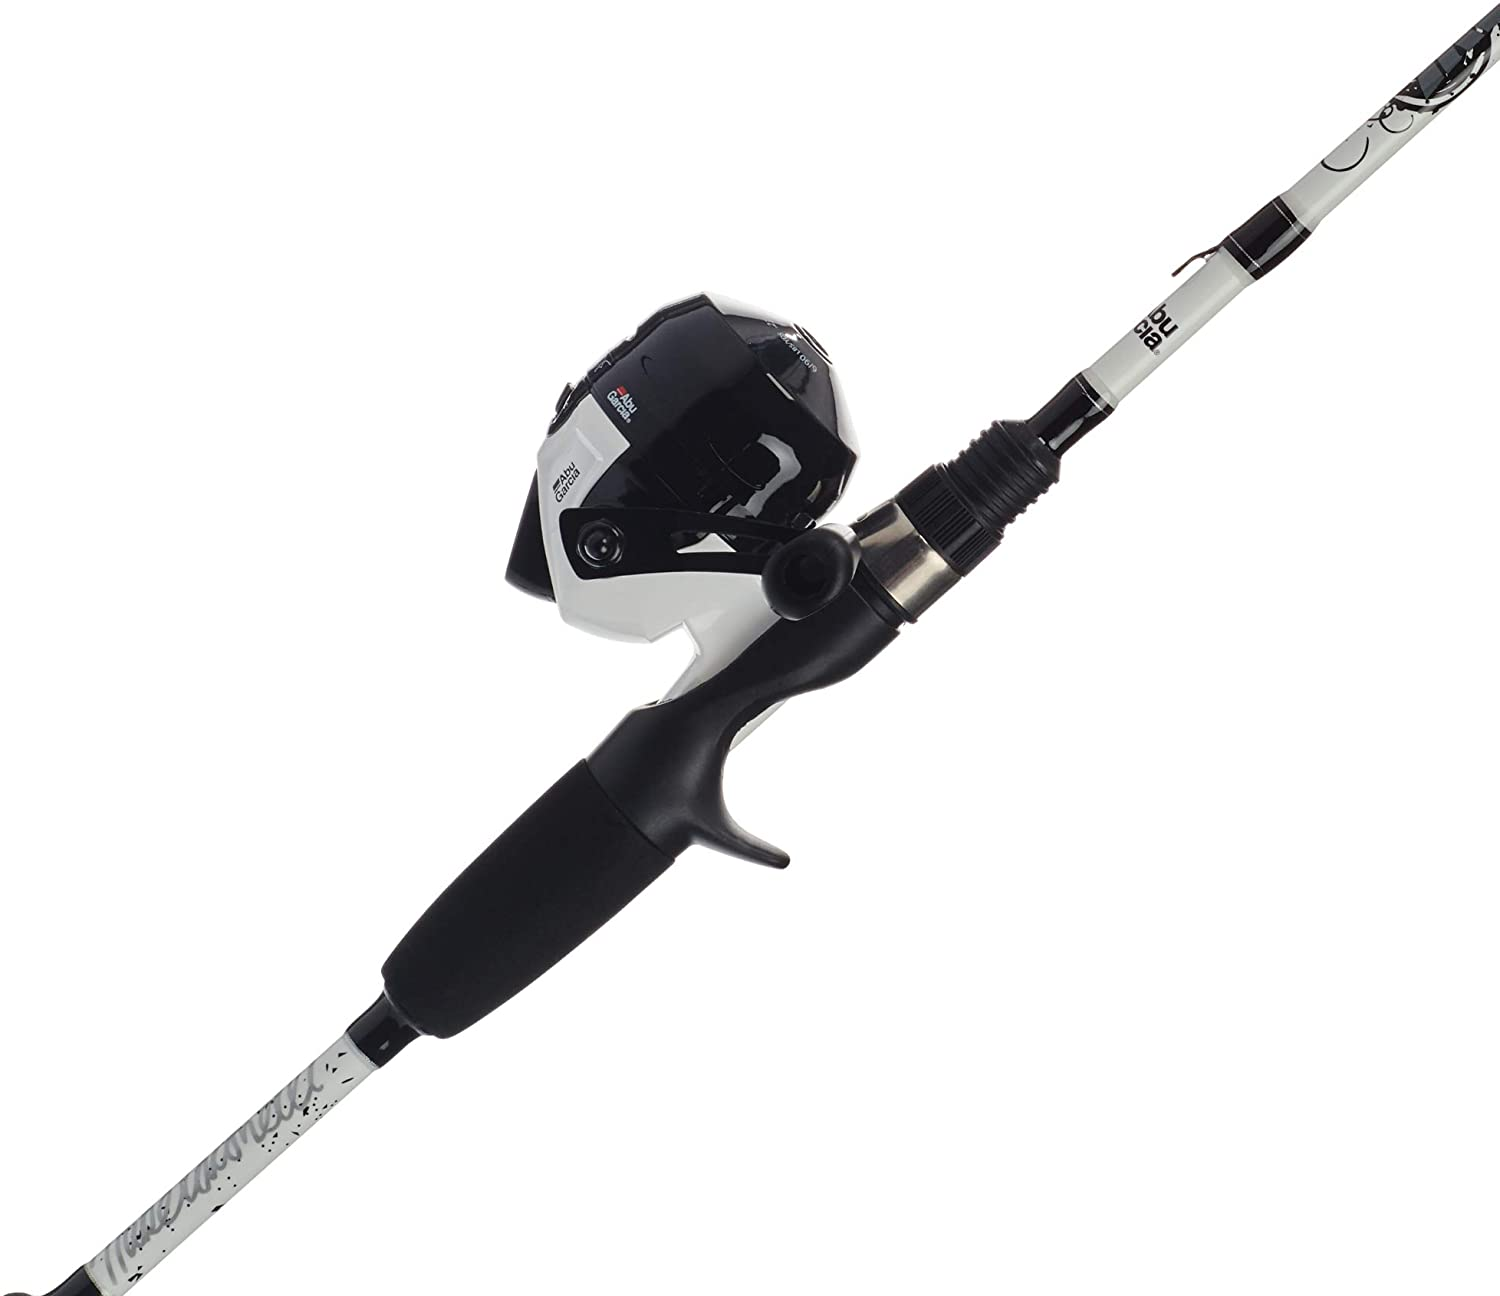 Abu Garcia Mike Iaconelli Pro-Designed Youth Reel and Fishing Rod Combos, White, 5'6